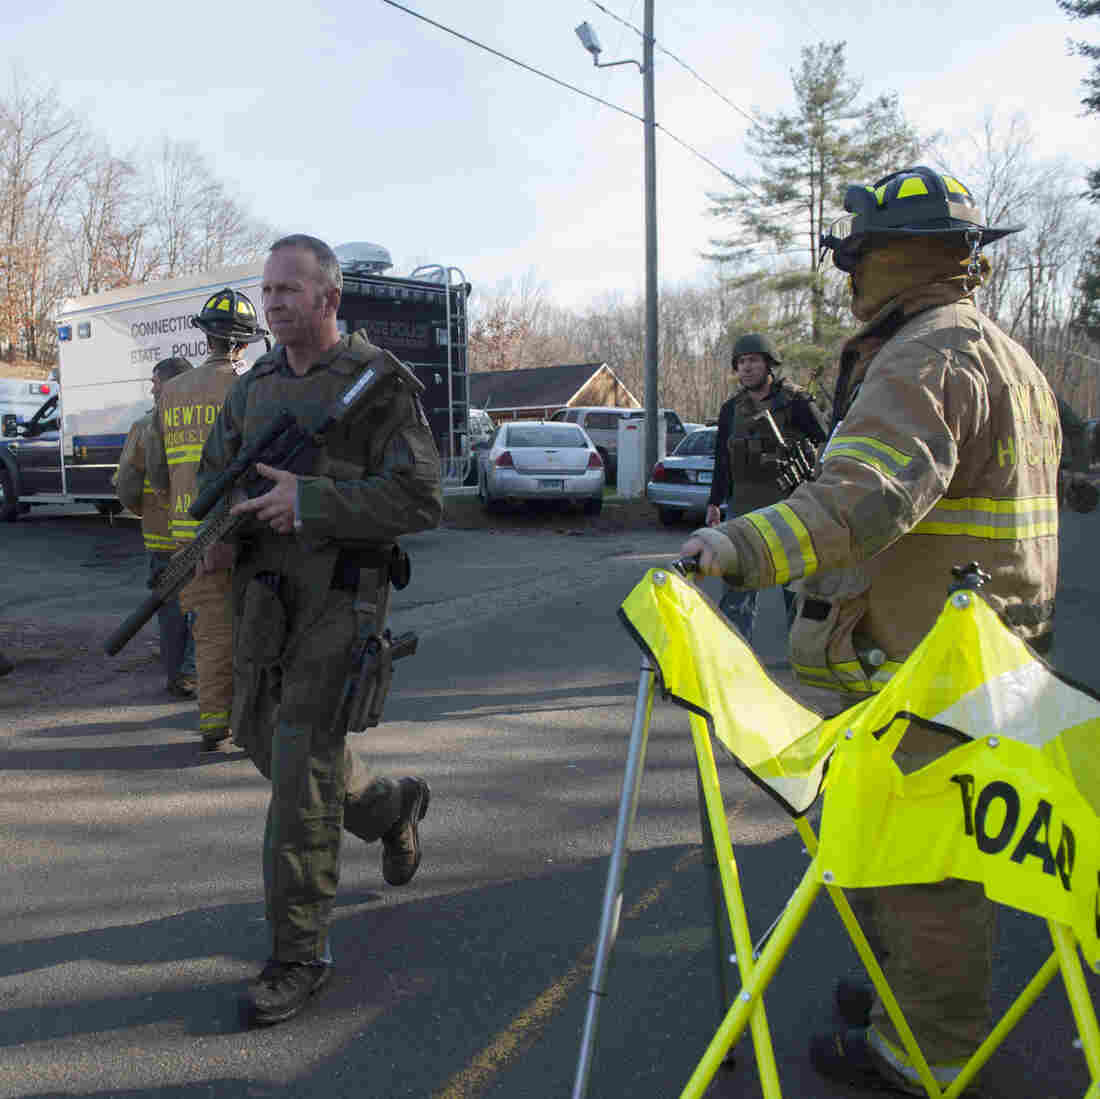 Sandy Hook Elementary 911 Calls Reveal Panic From Inside School